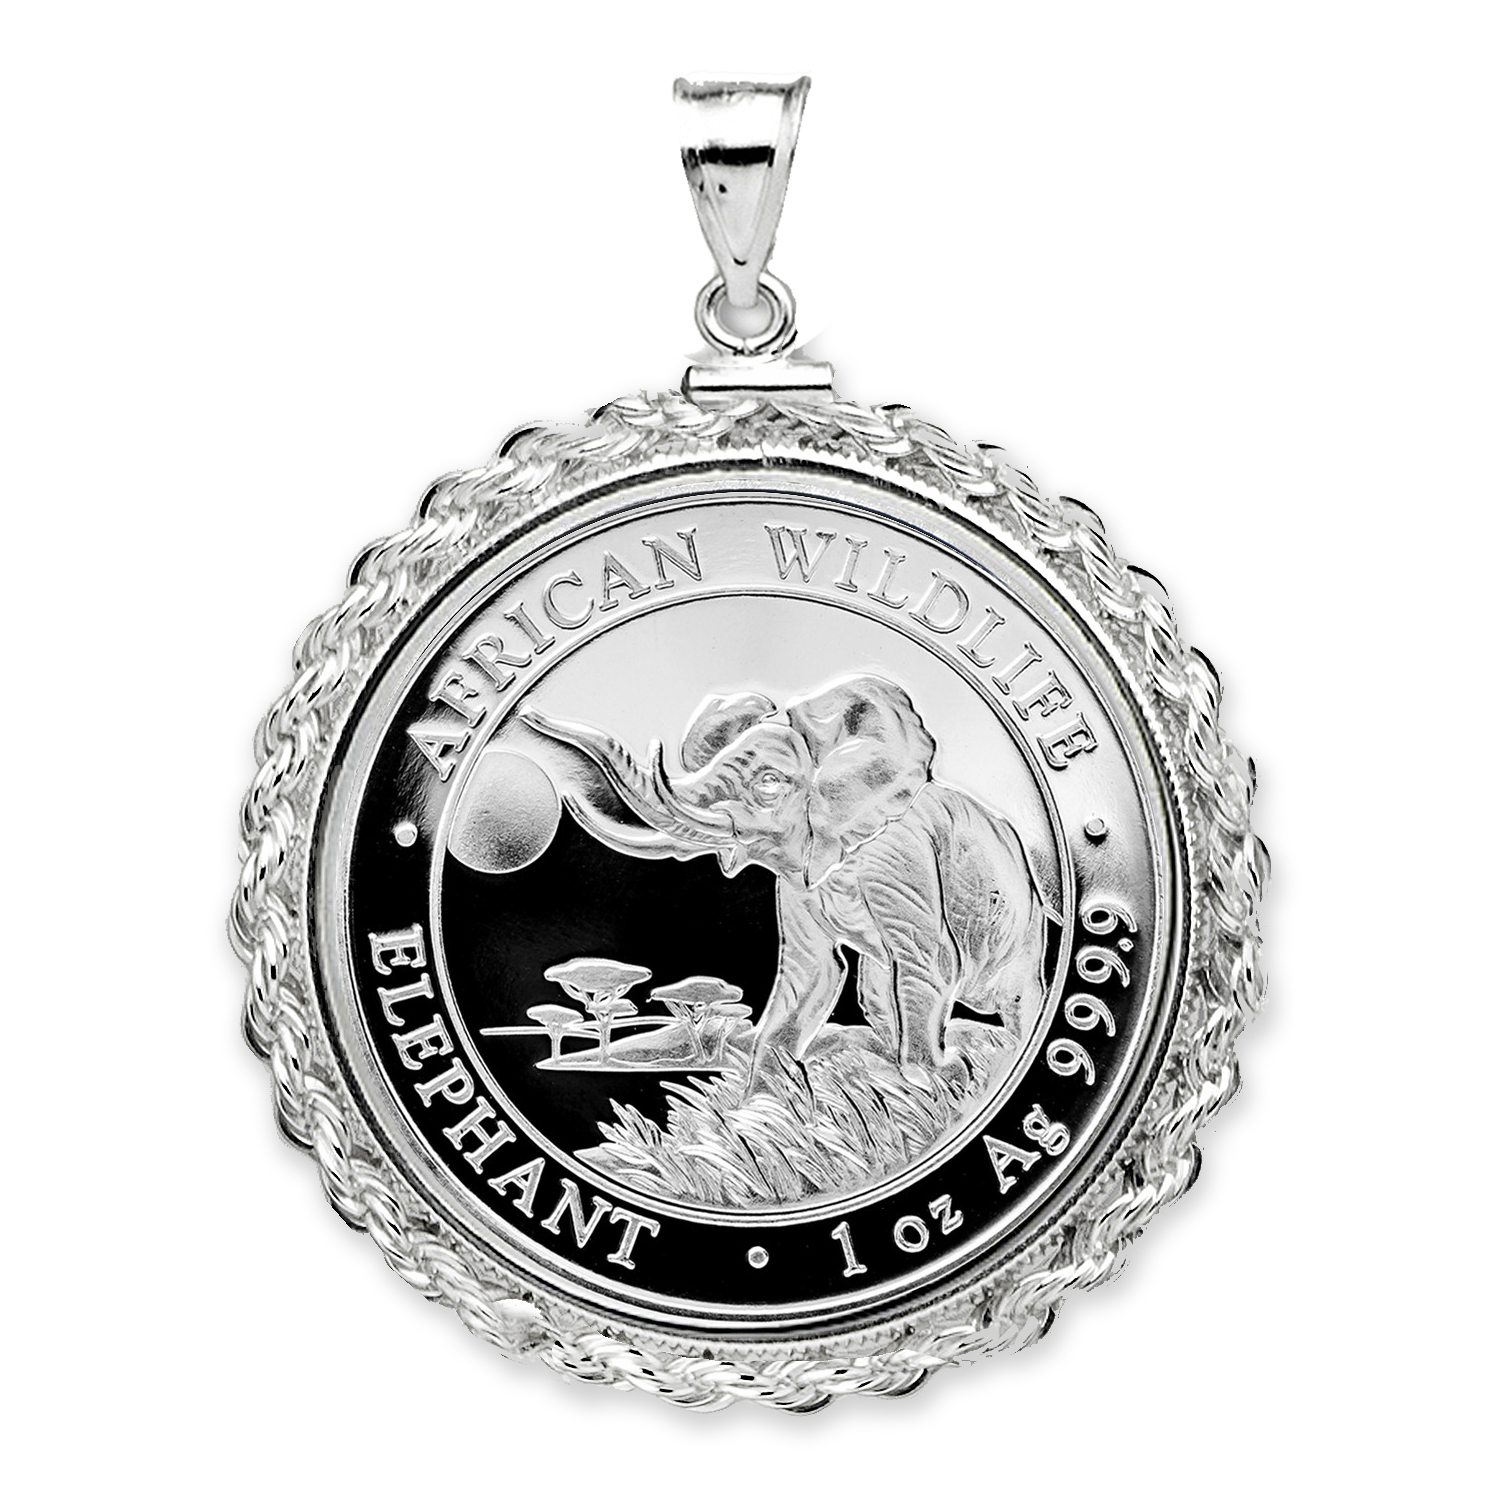 2016 Somalia 1 oz Silver Elephant Pendant (Rope Screw-Top)